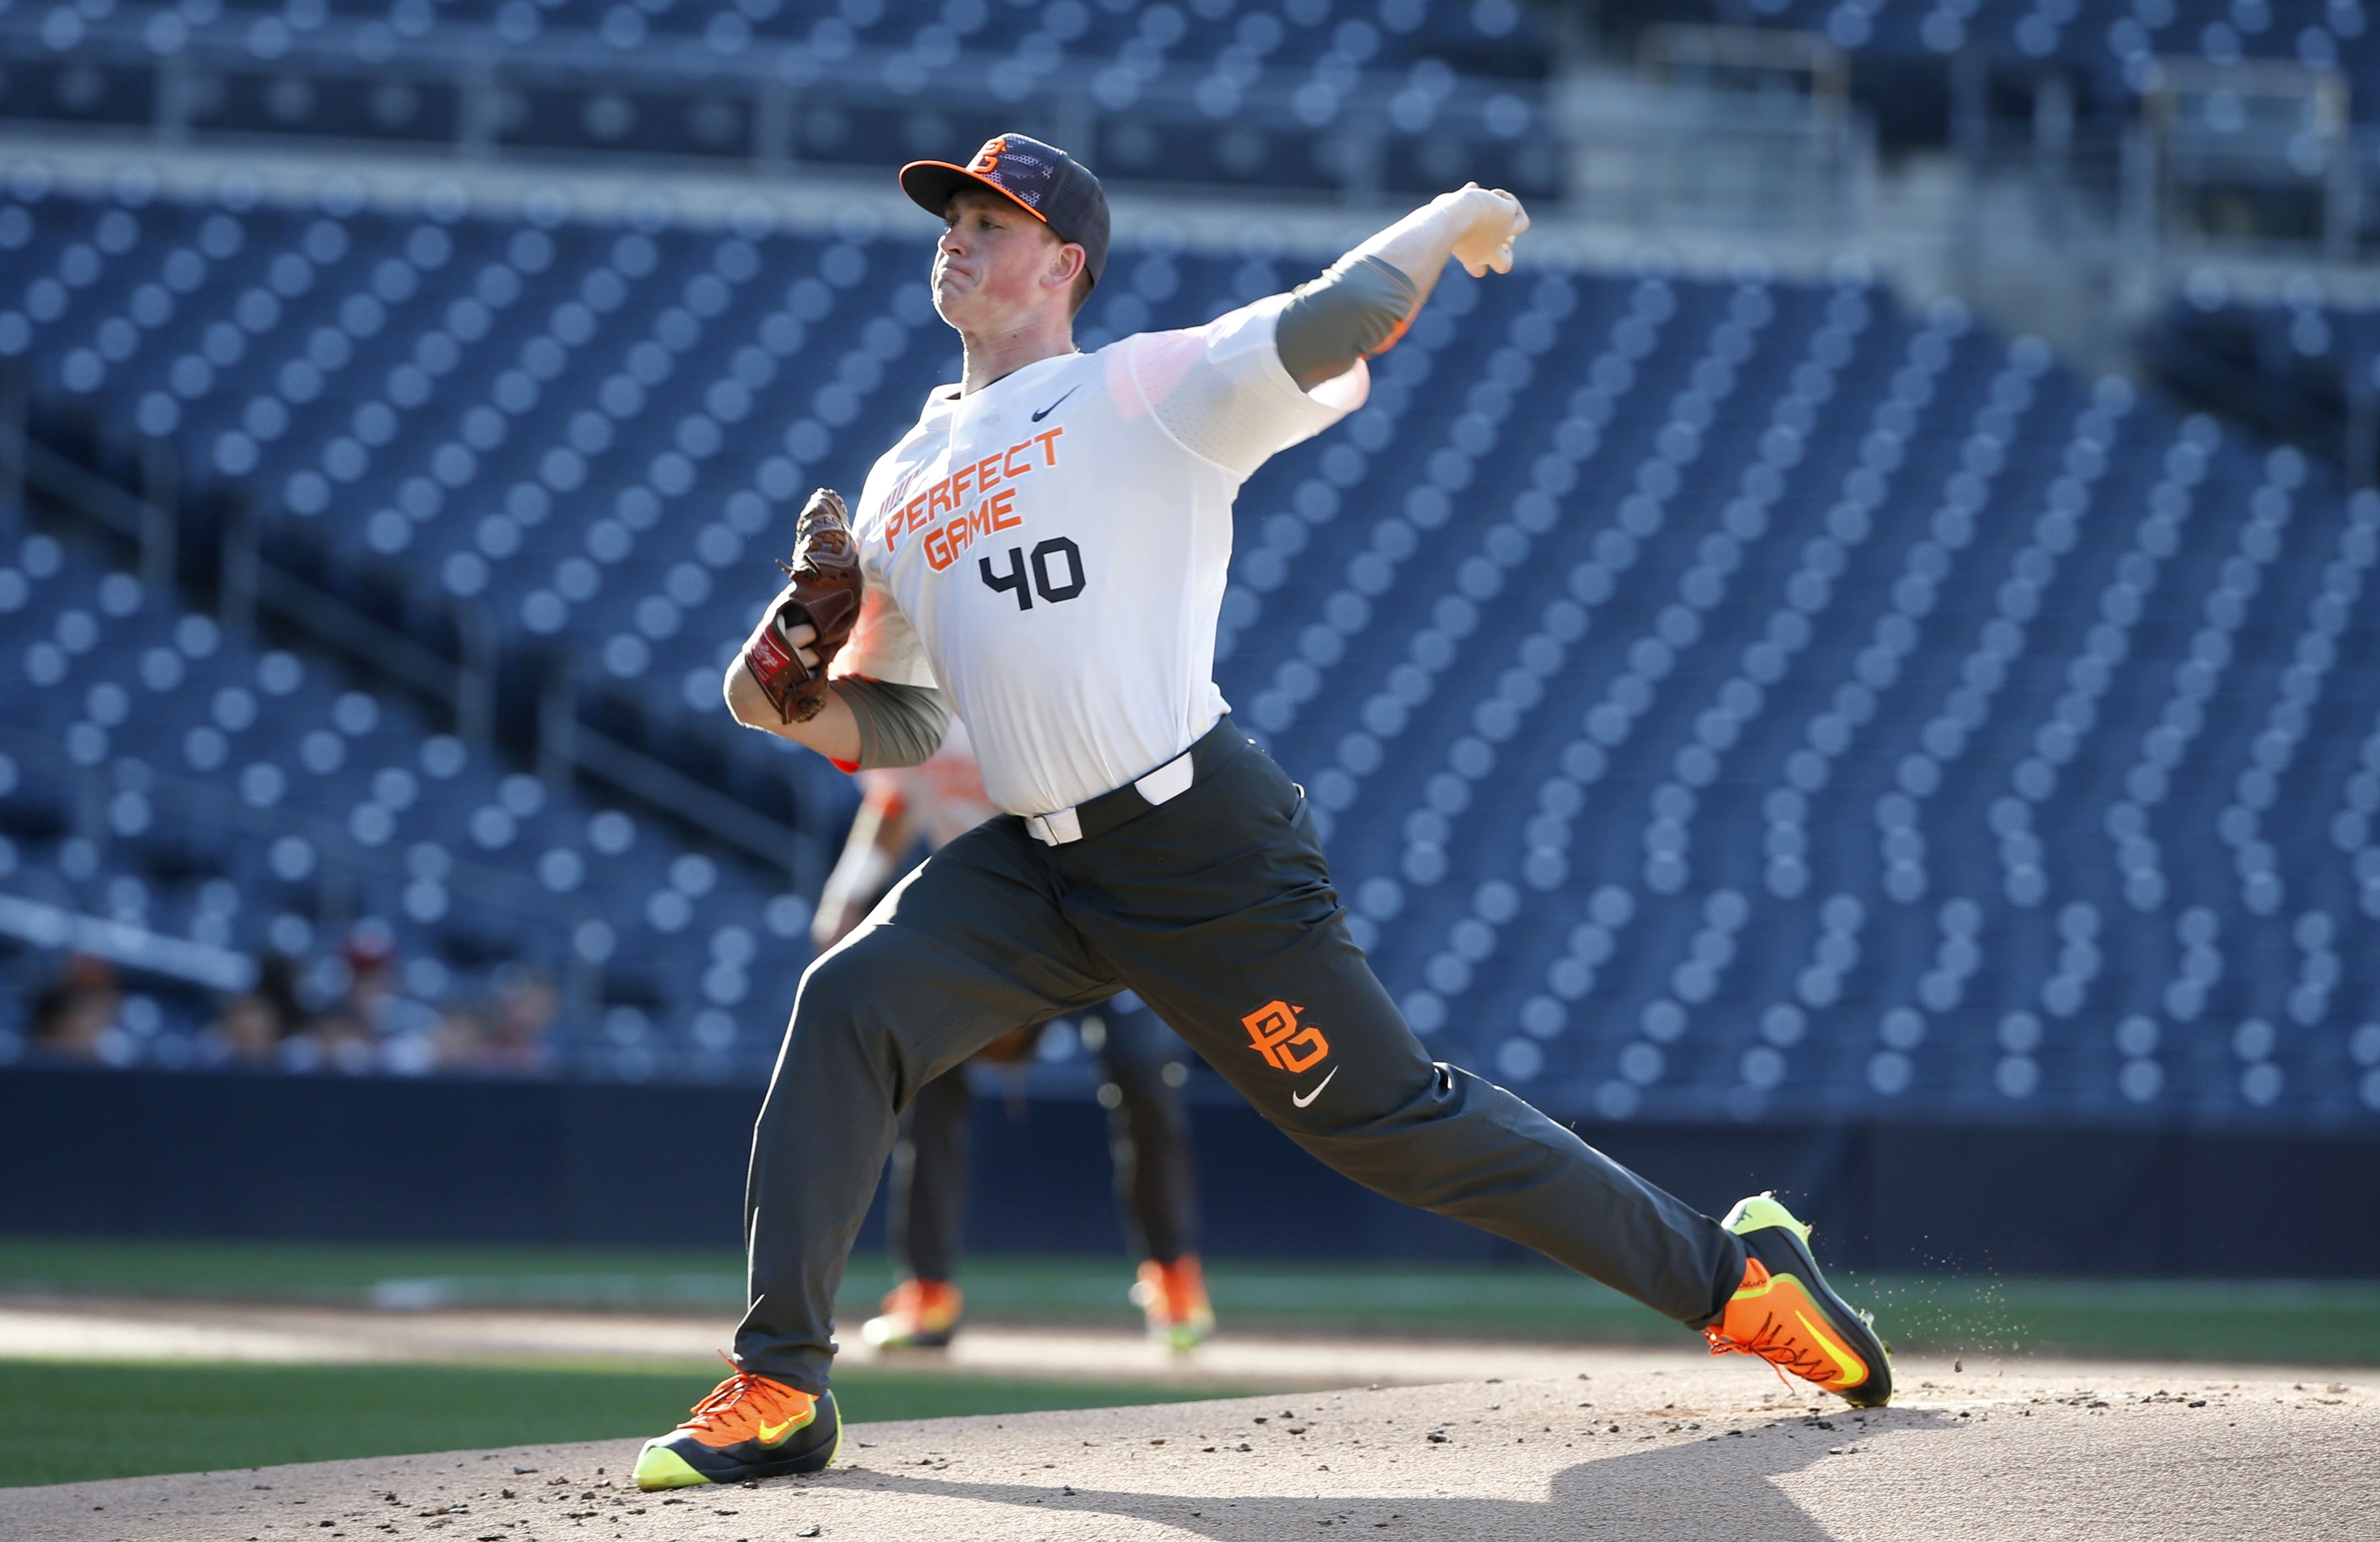 FILE - In this Aug. 16, 2015, file photo, Jason Groome pitches during the Perfect Game All-American Classic high school baseball game, in San Diego. The 17-year-old from Barnegat High School along the New Jersey Shore is 6-foot-5, 225 pounds, throws in the 90s and has a deuce that falls off the table. It's everything baseball scouts want to see, and it's one of the reasons he's considered an early pick in baseball's draft on Thursday night, June 9, 2016. (AP Photo/Lenny Ignelzi, File)